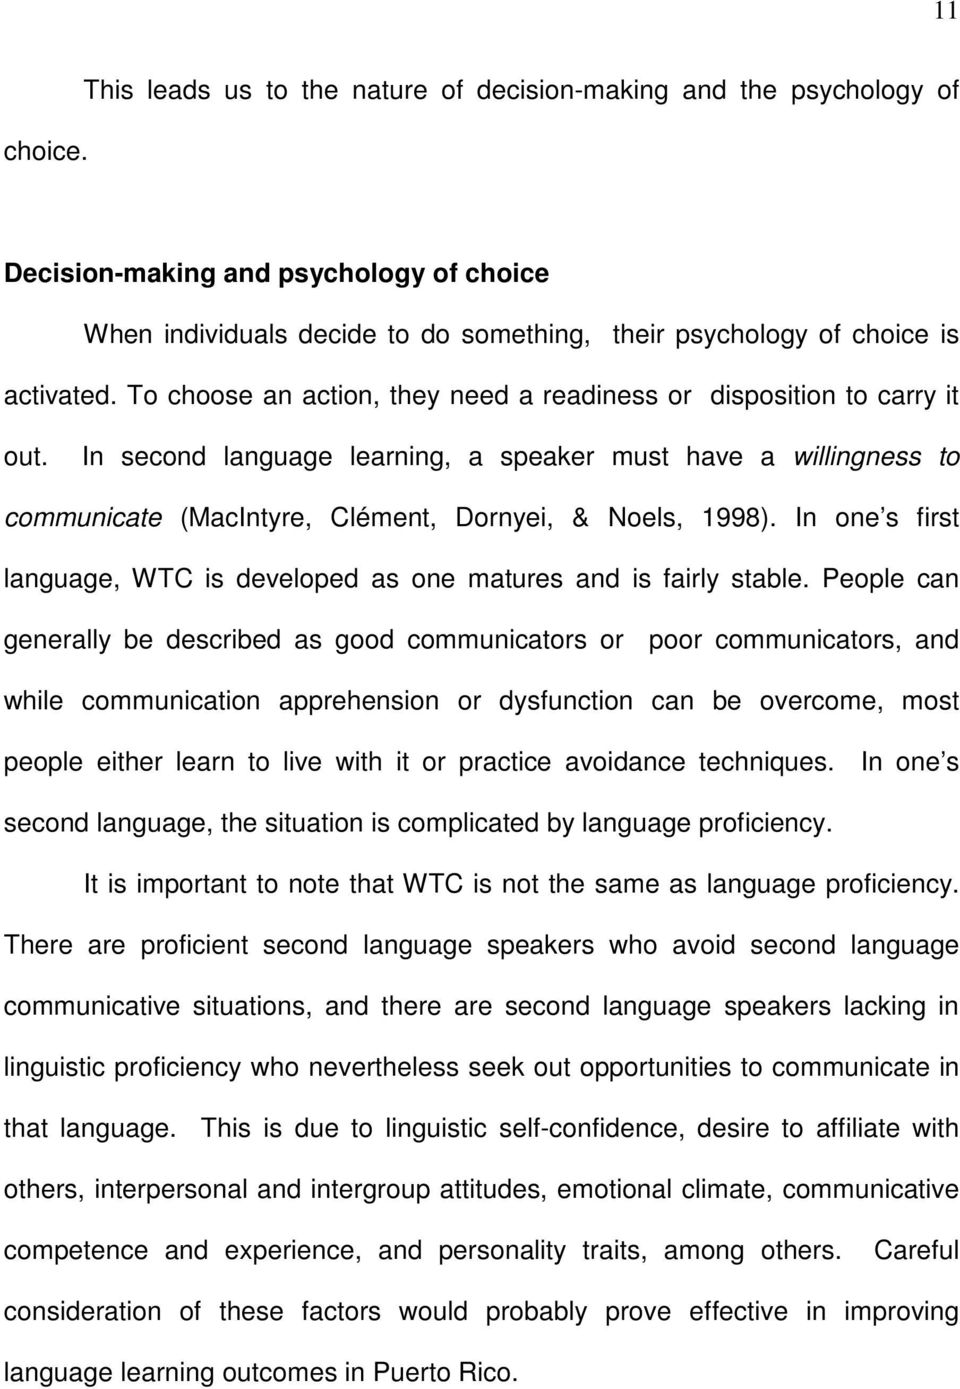 To choose an action, they need a readiness or disposition to carry it out. In second language learning, a speaker must have a willingness to communicate (MacIntyre, Clément, Dornyei, & Noels, 1998).